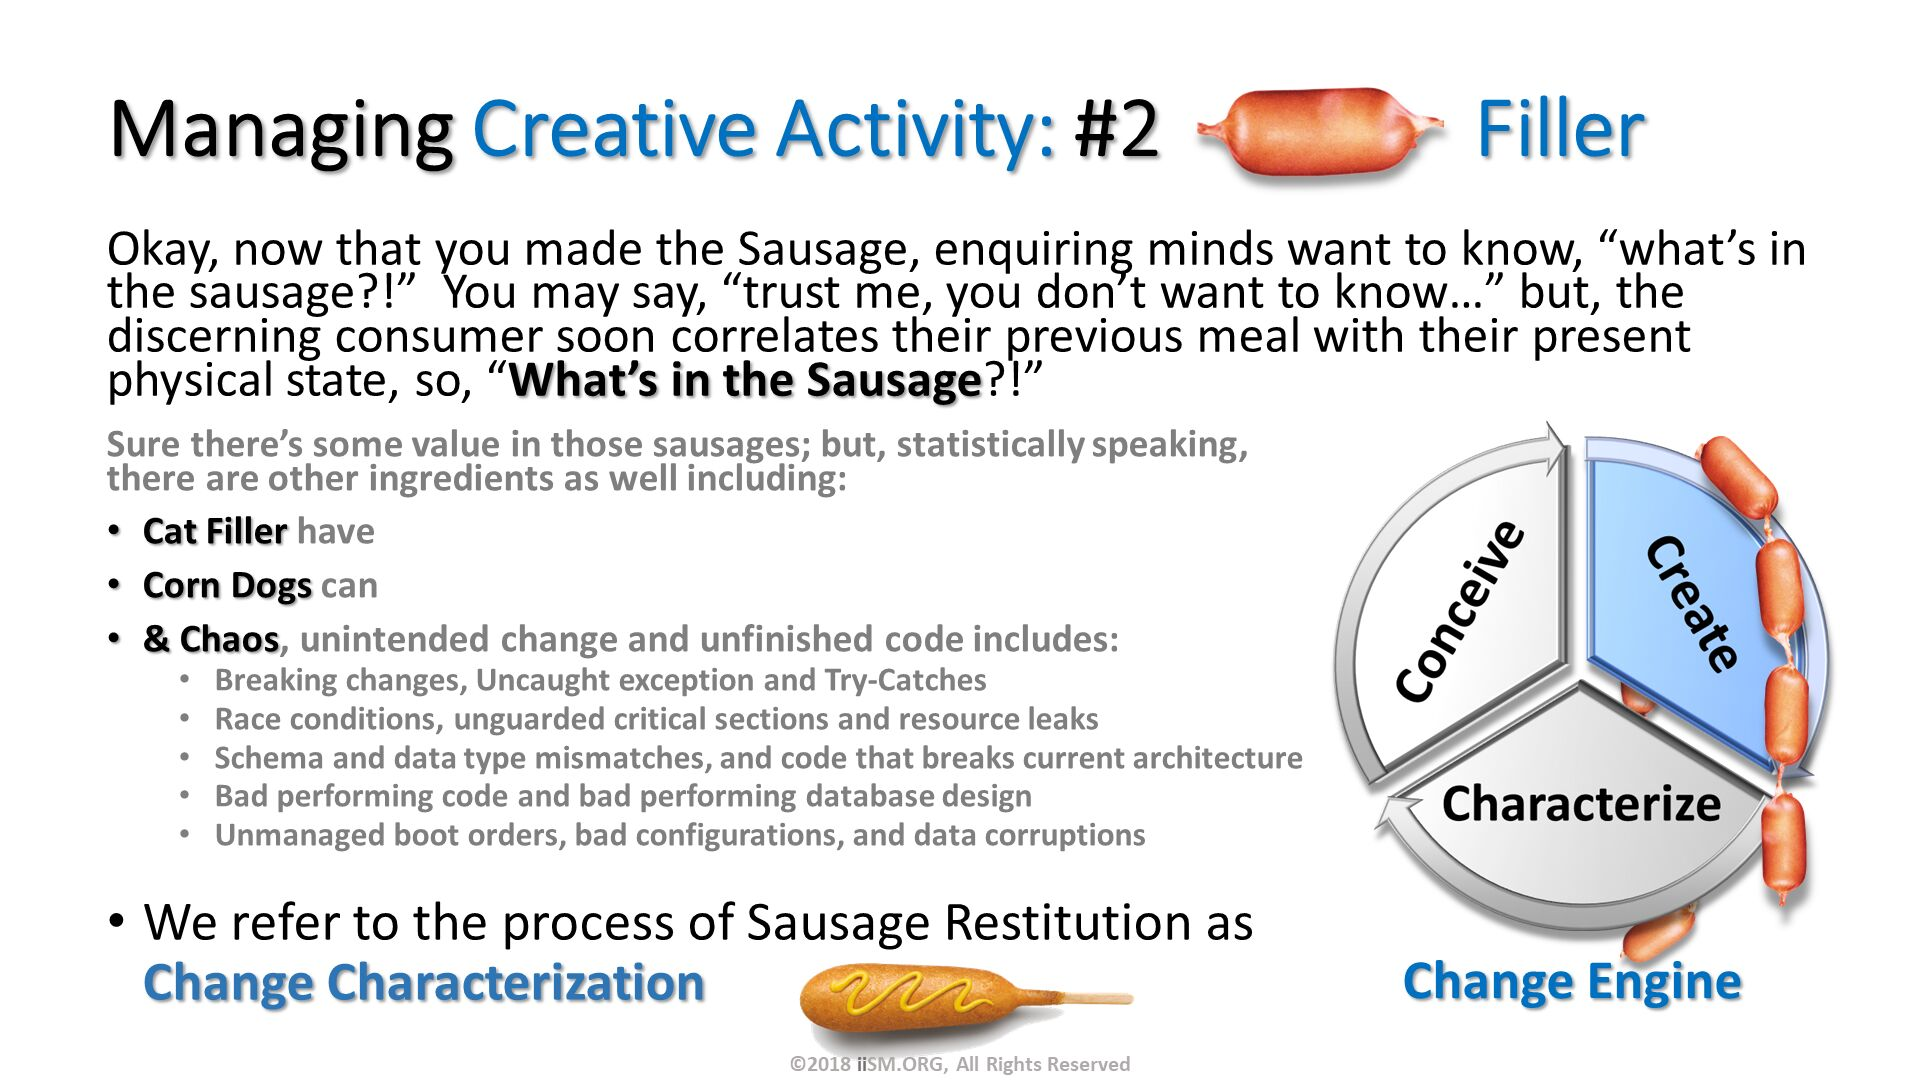 "Managing Creative Activity: #2                Filler. Okay, now that you made the Sausage, enquiring minds want to know, ""what's in the sausage?!""  You may say, ""trust me, you don't want to know…"" but, the discerning consumer soon correlates their previous meal with their present physical state, so, ""What's in the Sausage?!"". We refer to the process of Sausage Restitution as Change Characterization  . Change Engine . Sure there's some value in those sausages; but, statistically speaking, there are other ingredients as well including: Cat Filler have  Corn Dogs can & Chaos, unintended change and unfinished code includes: Breaking changes, Uncaught exception and Try-Catches Race conditions, unguarded critical sections and resource leaks Schema and data type mismatches, and code that breaks current architecture Bad performing code and bad performing database design Unmanaged boot orders, bad configurations, and data corruptions. ©2018 iiSM.ORG, All Rights Reserved."